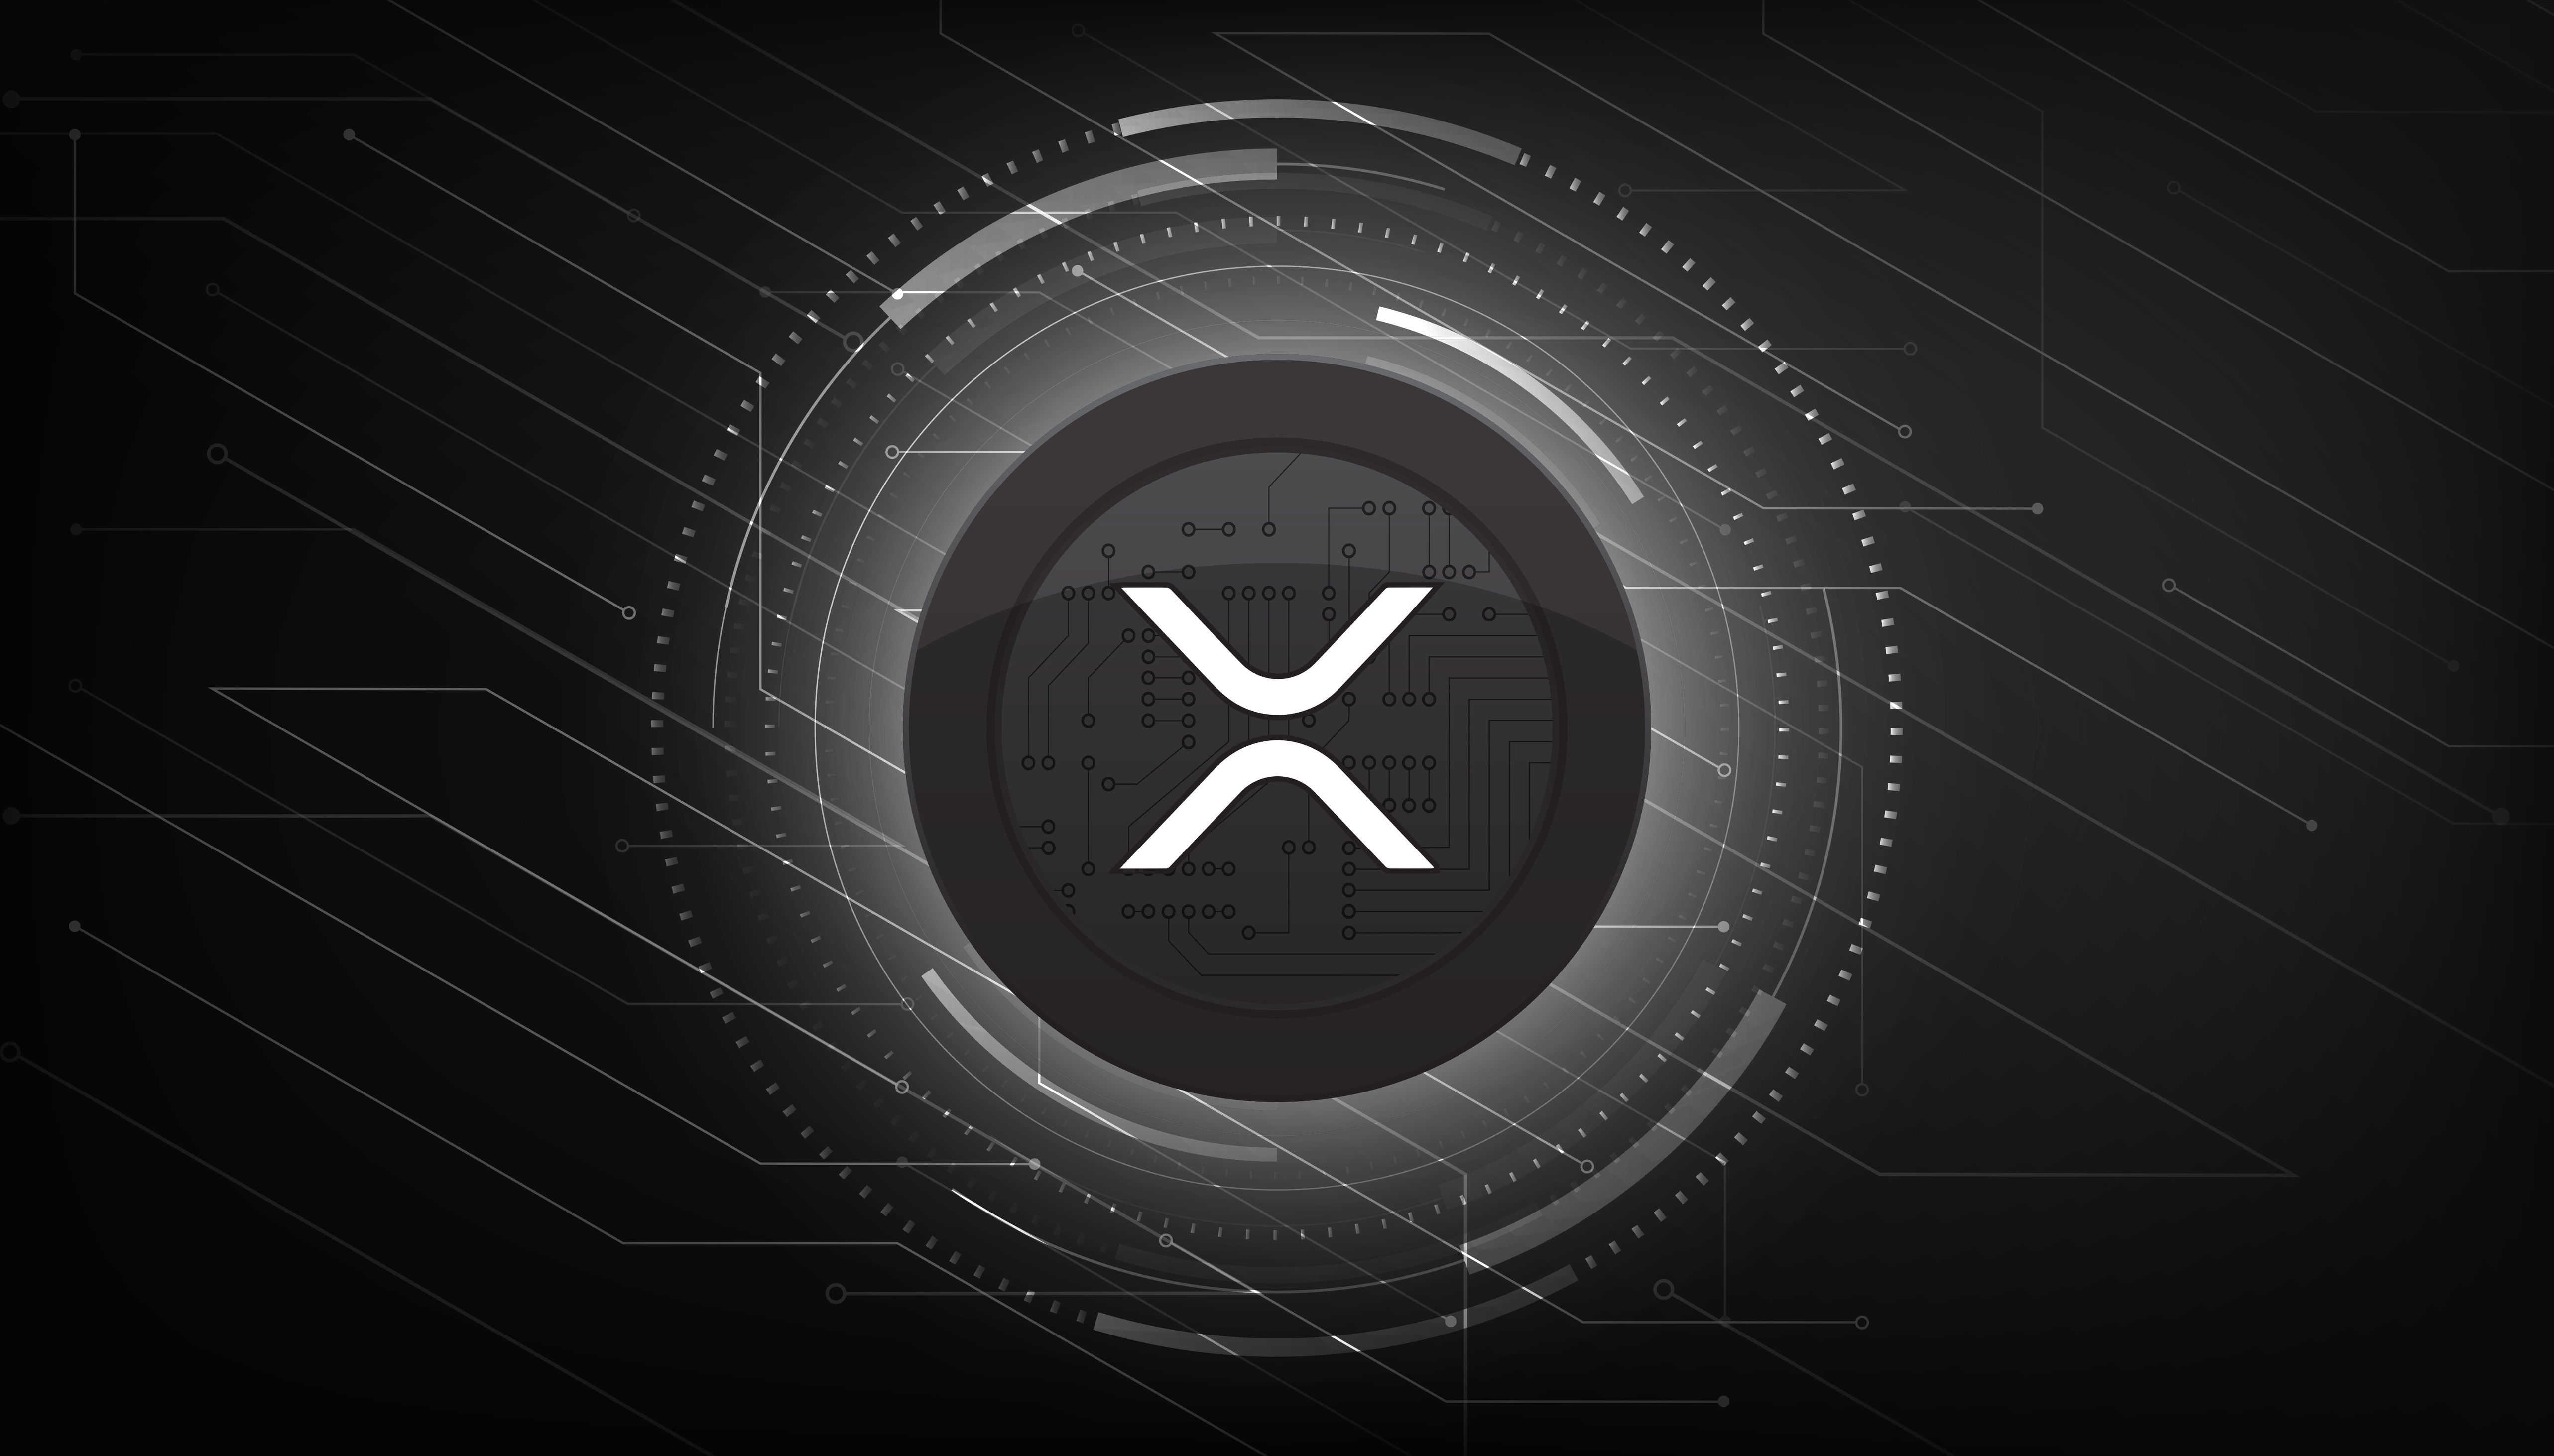 Another Japanese Crypto Exchange Will Add XRP Support